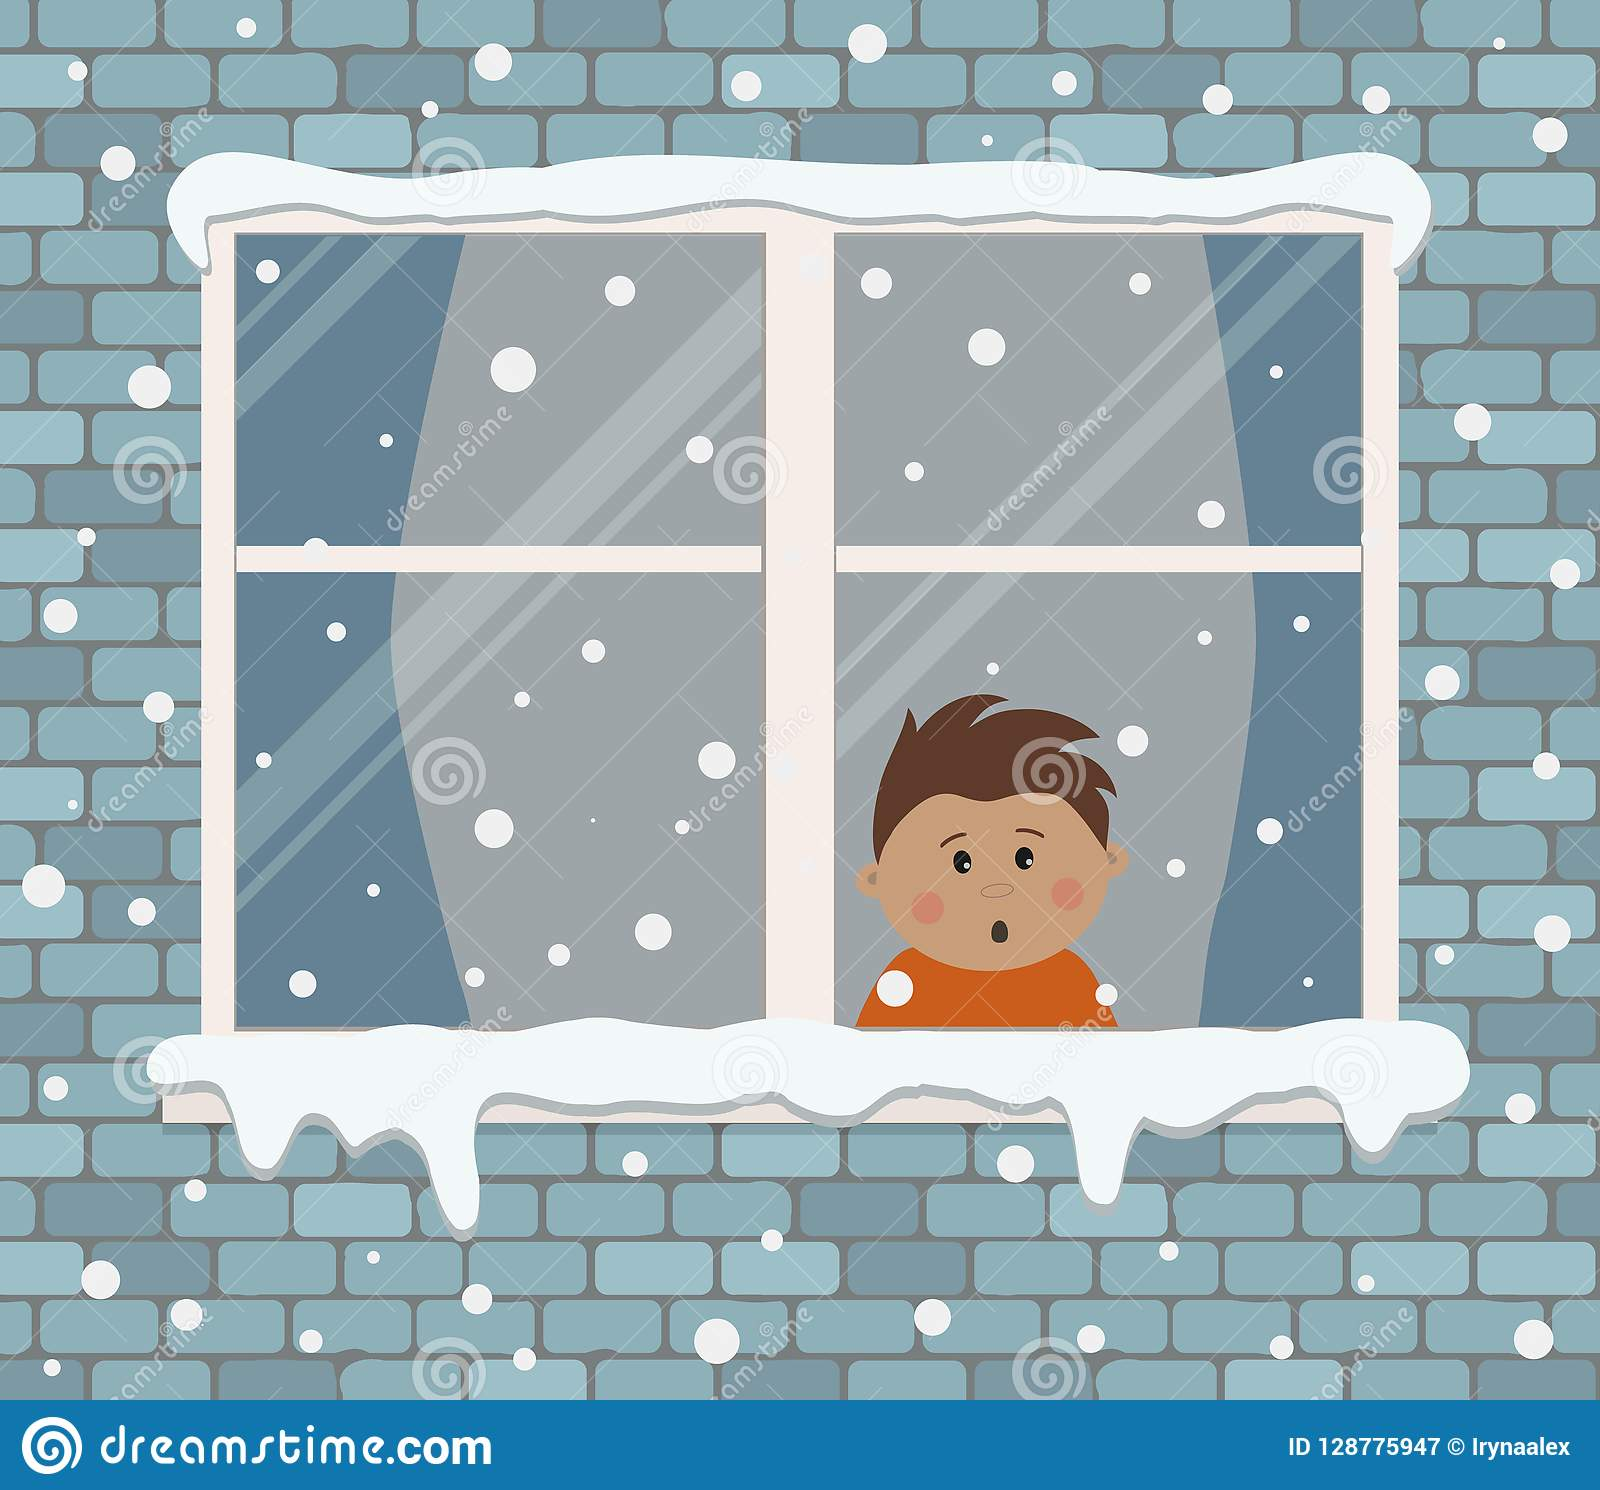 Window on a brick wall on a snowy day. A little boy in the room is surprised, looking at the snow